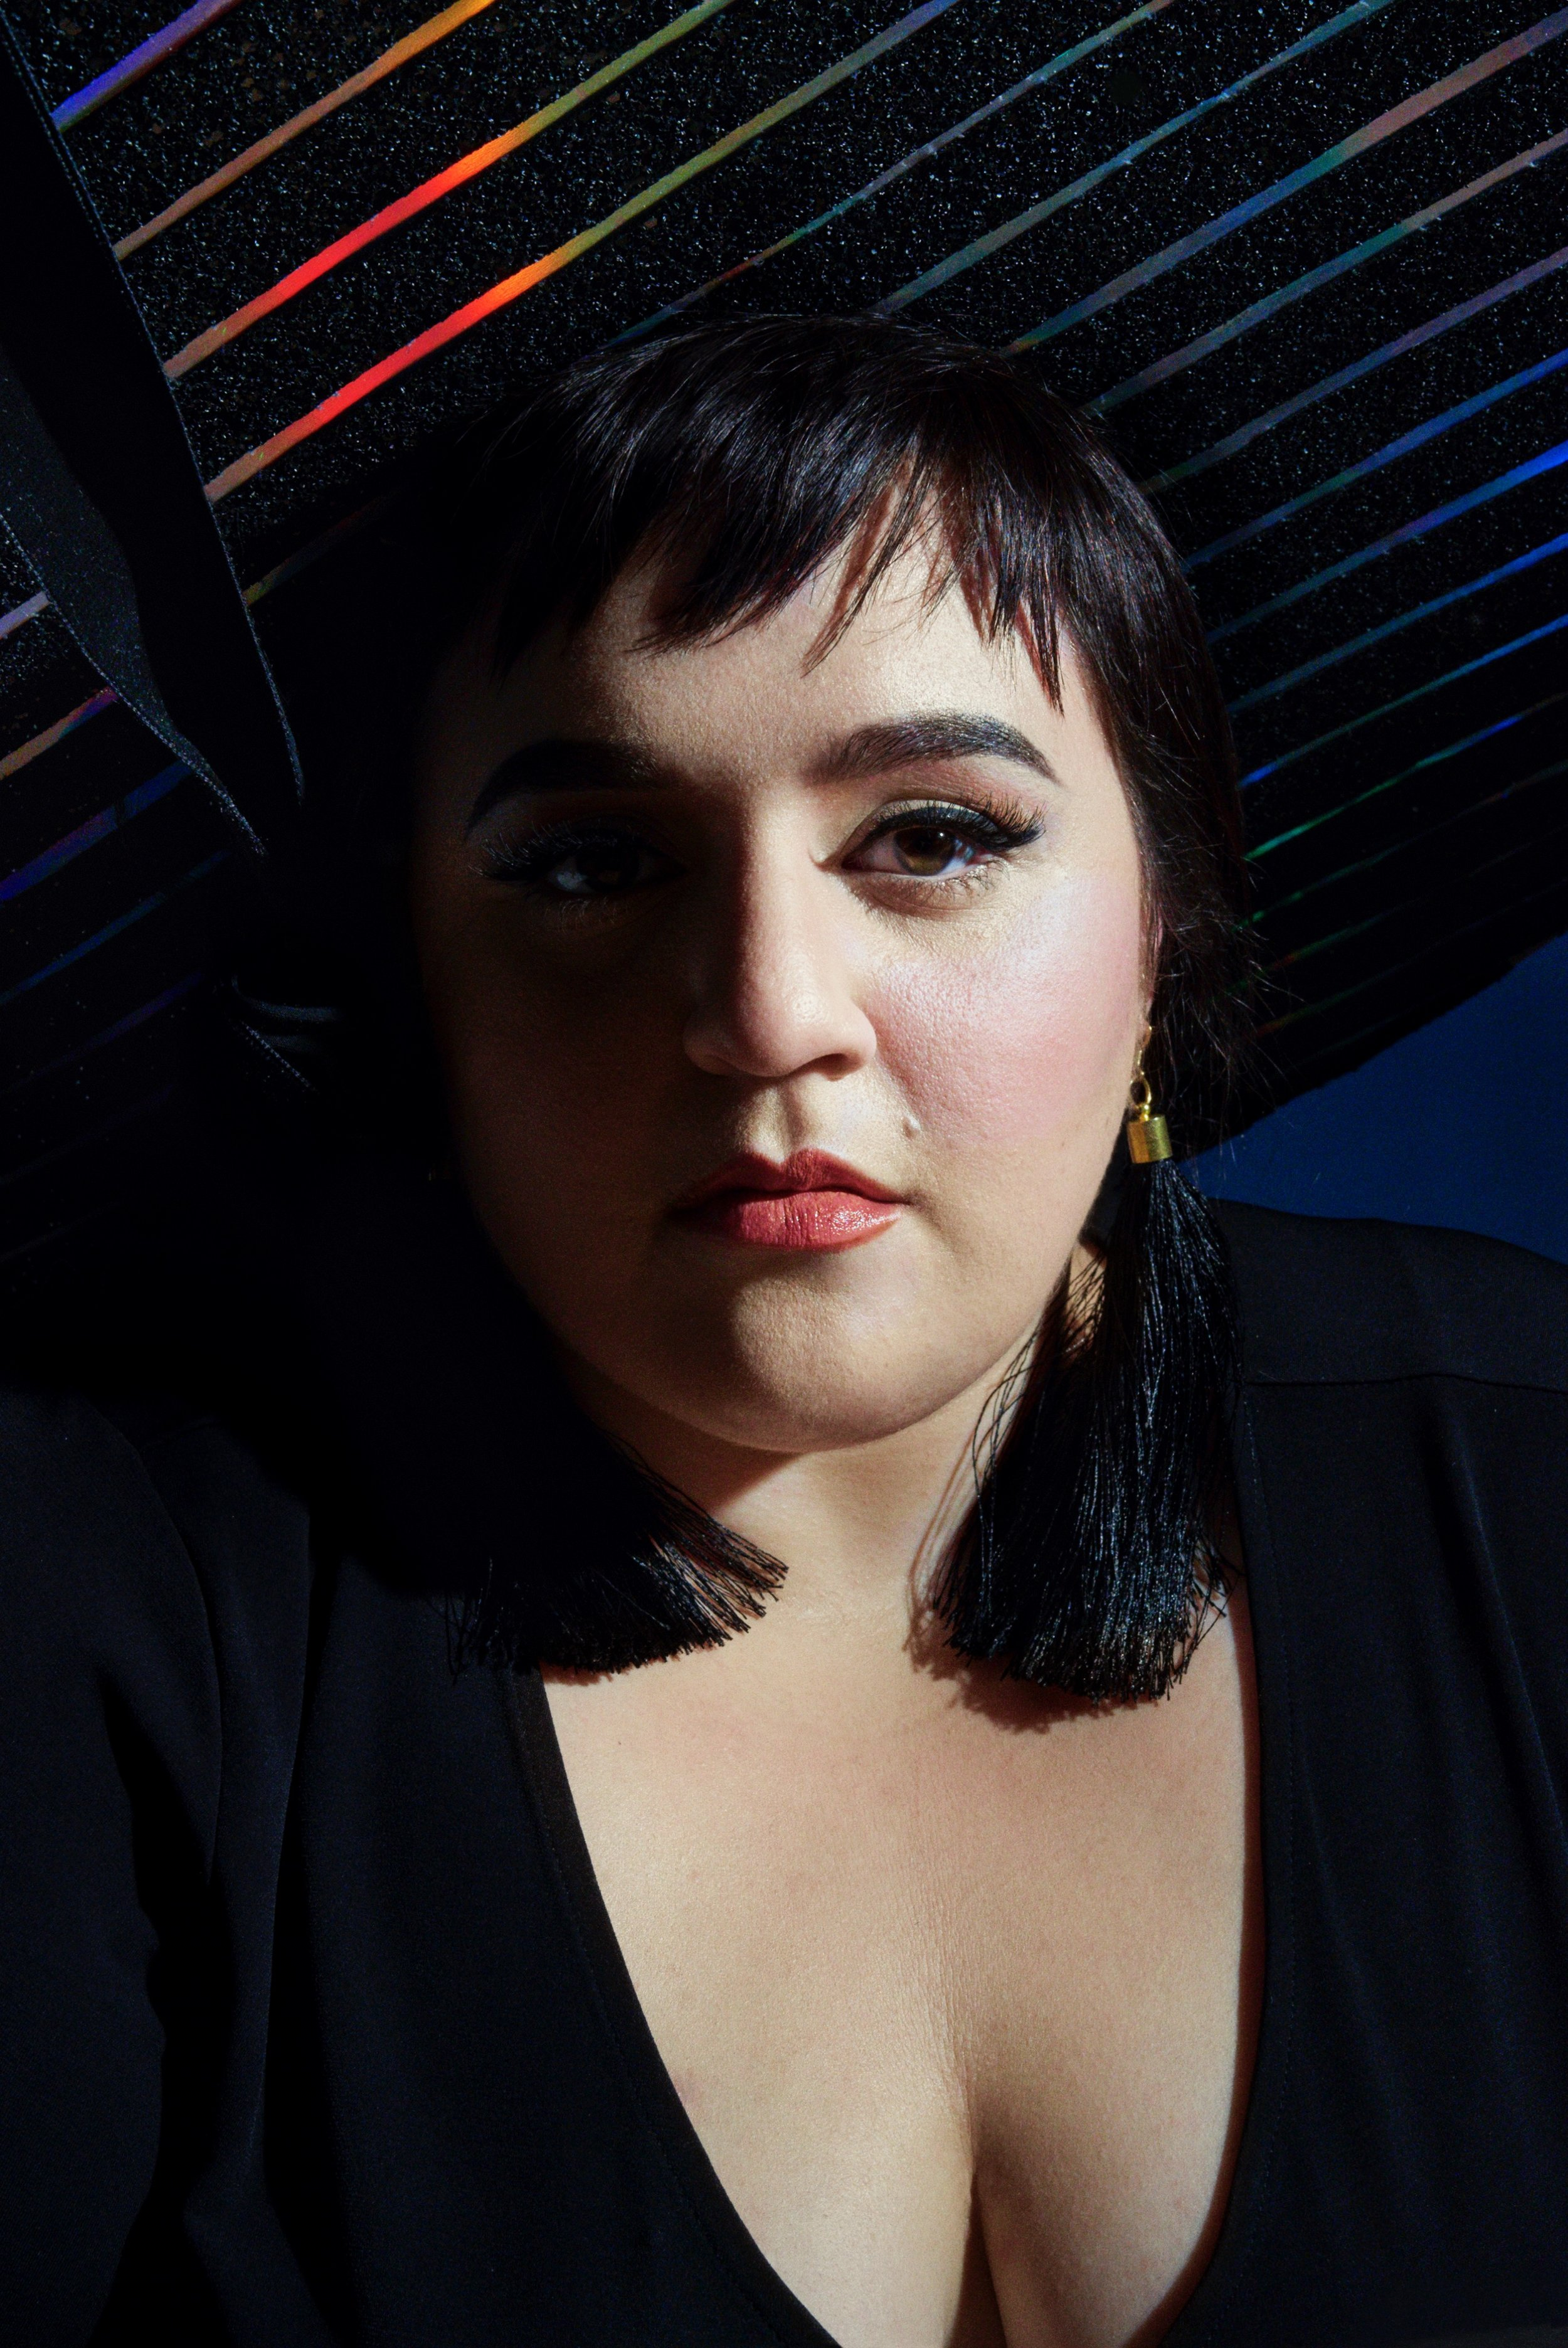 Israel Mejia Nikki Blonsky Out Magazine3.jpeg